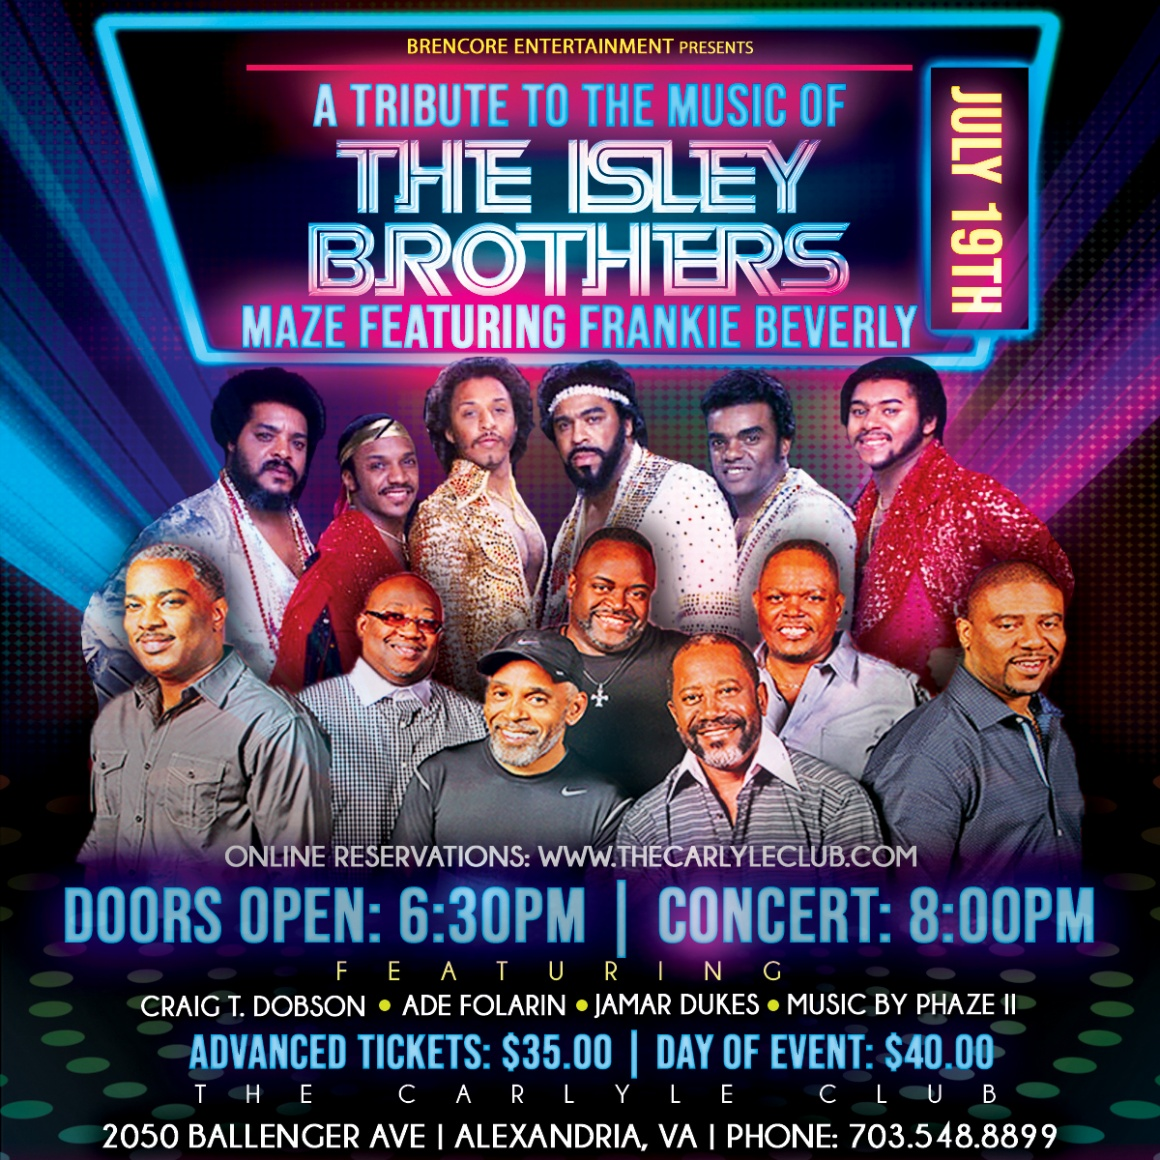 A Tribute to the Music of The Isley Brothers